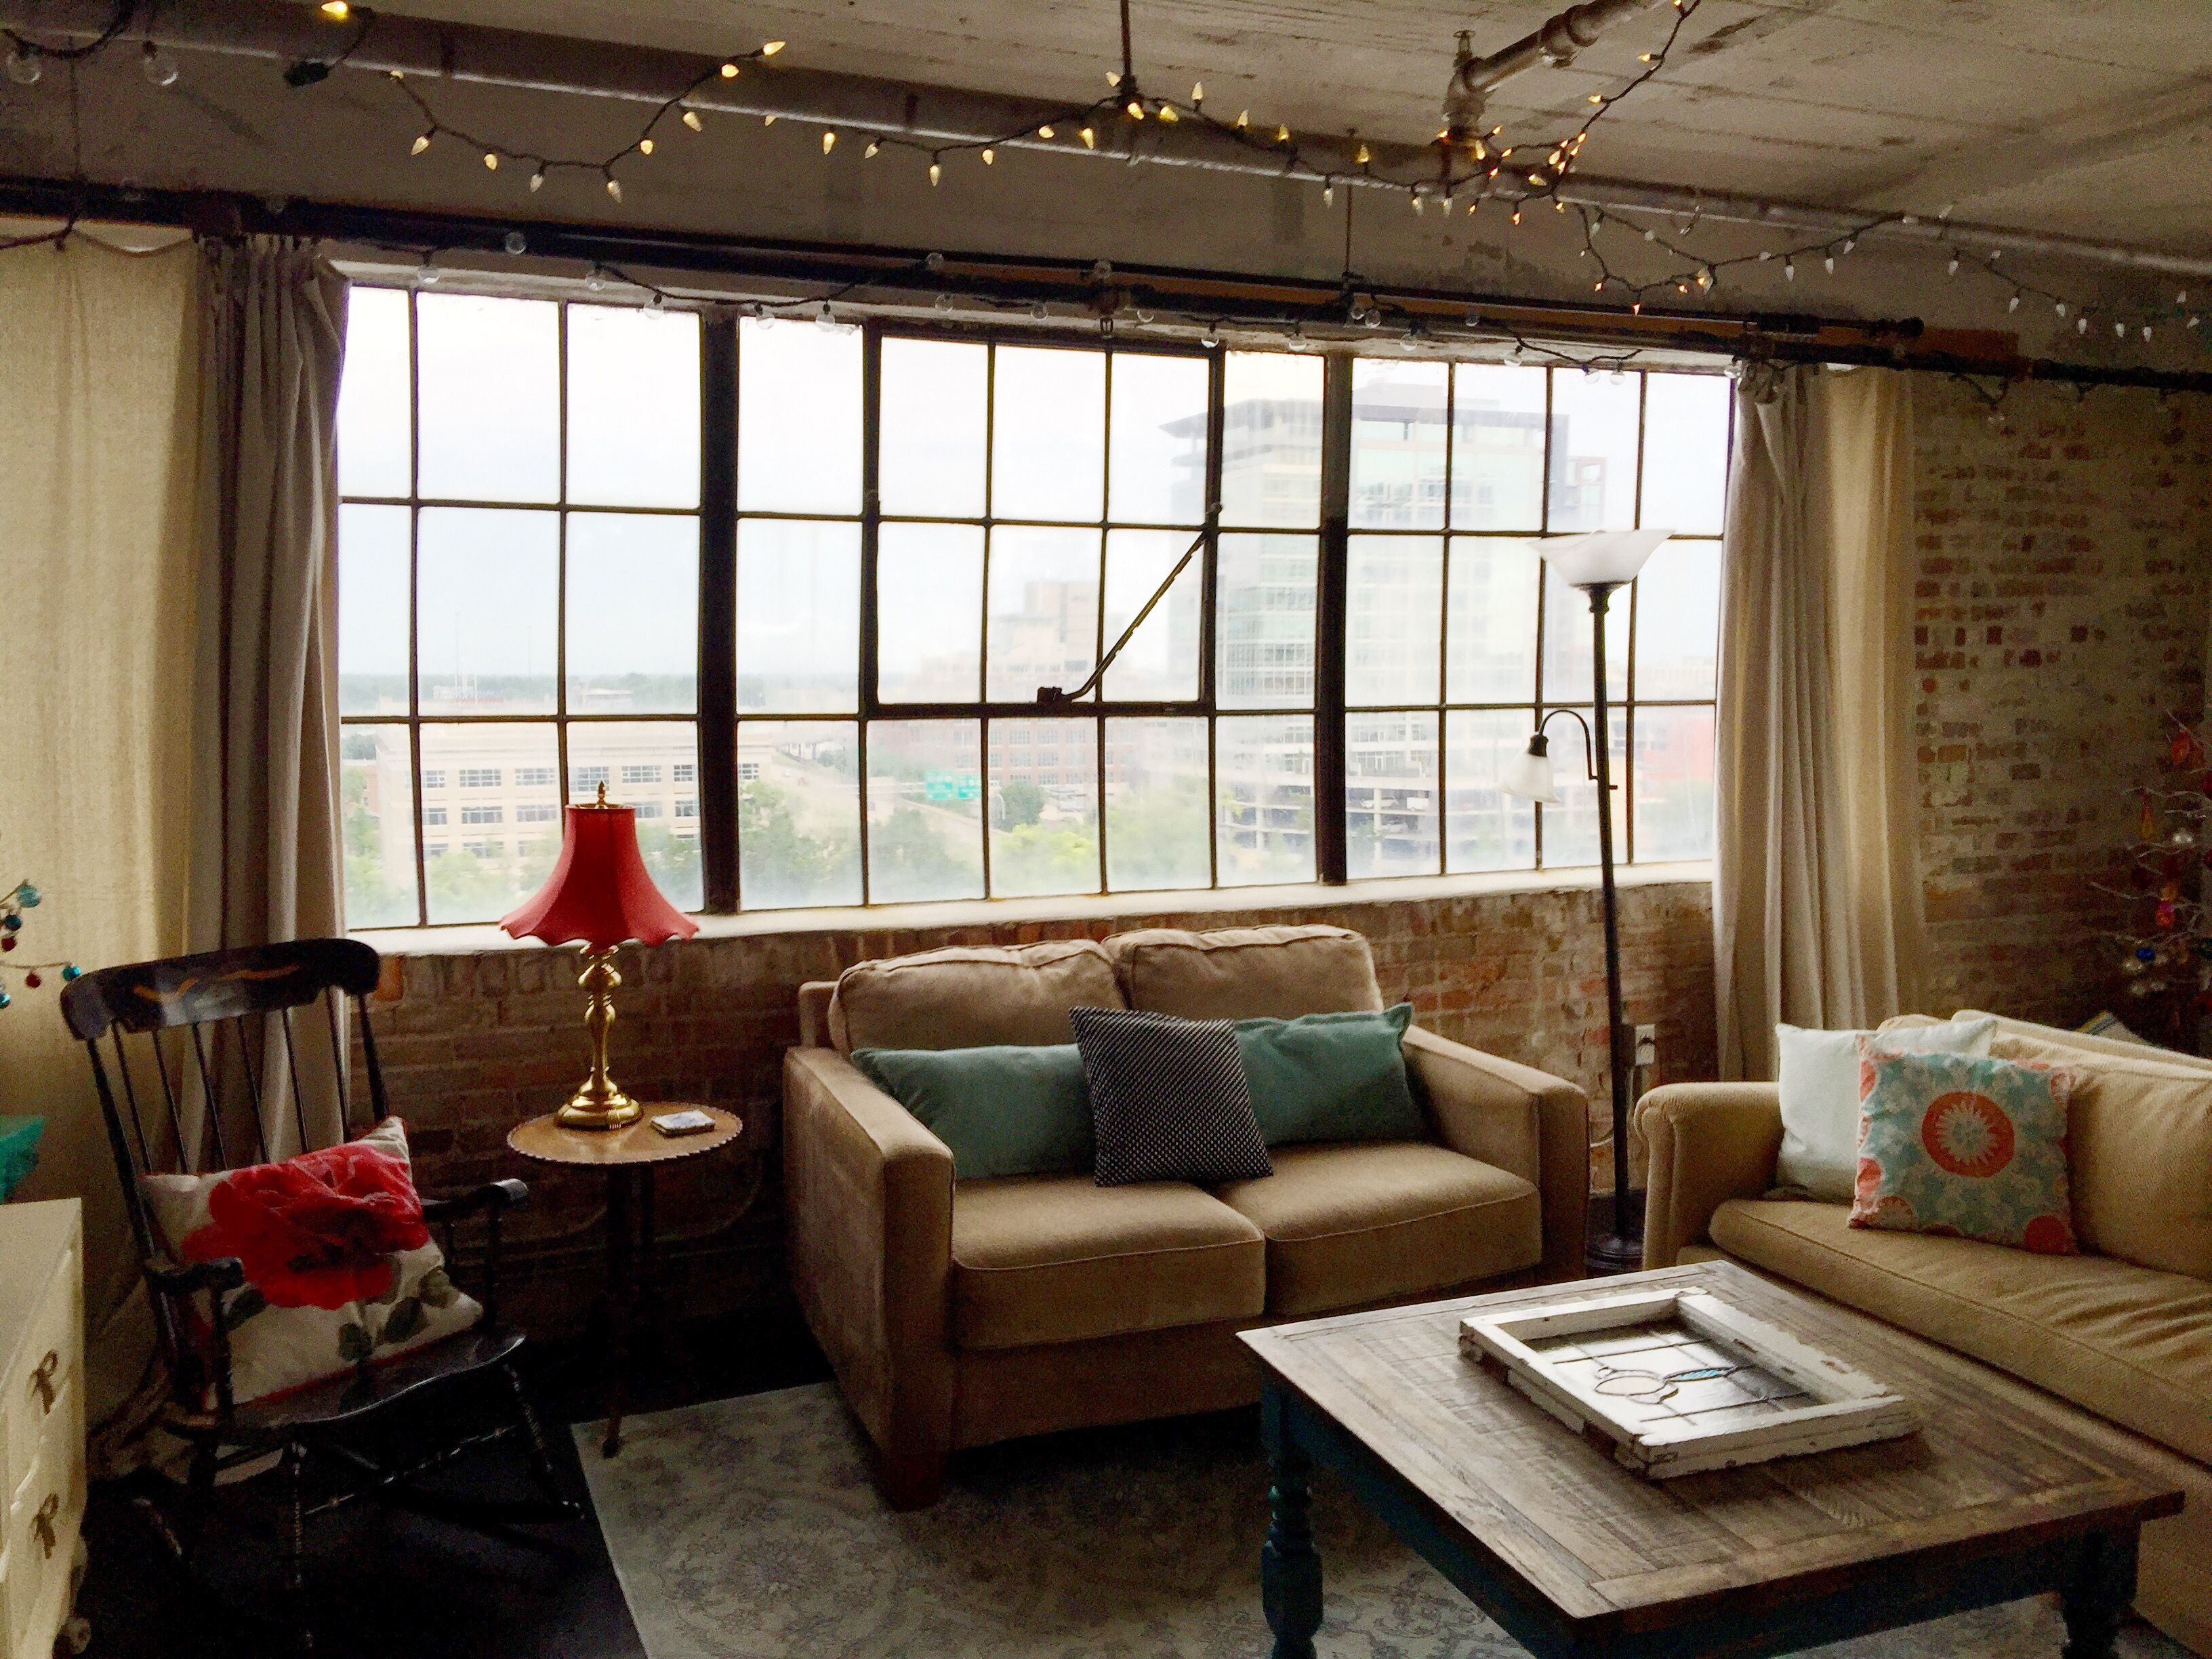 #Loft #Cityliving #Industrial #Charming #Livingroom #Large Windows